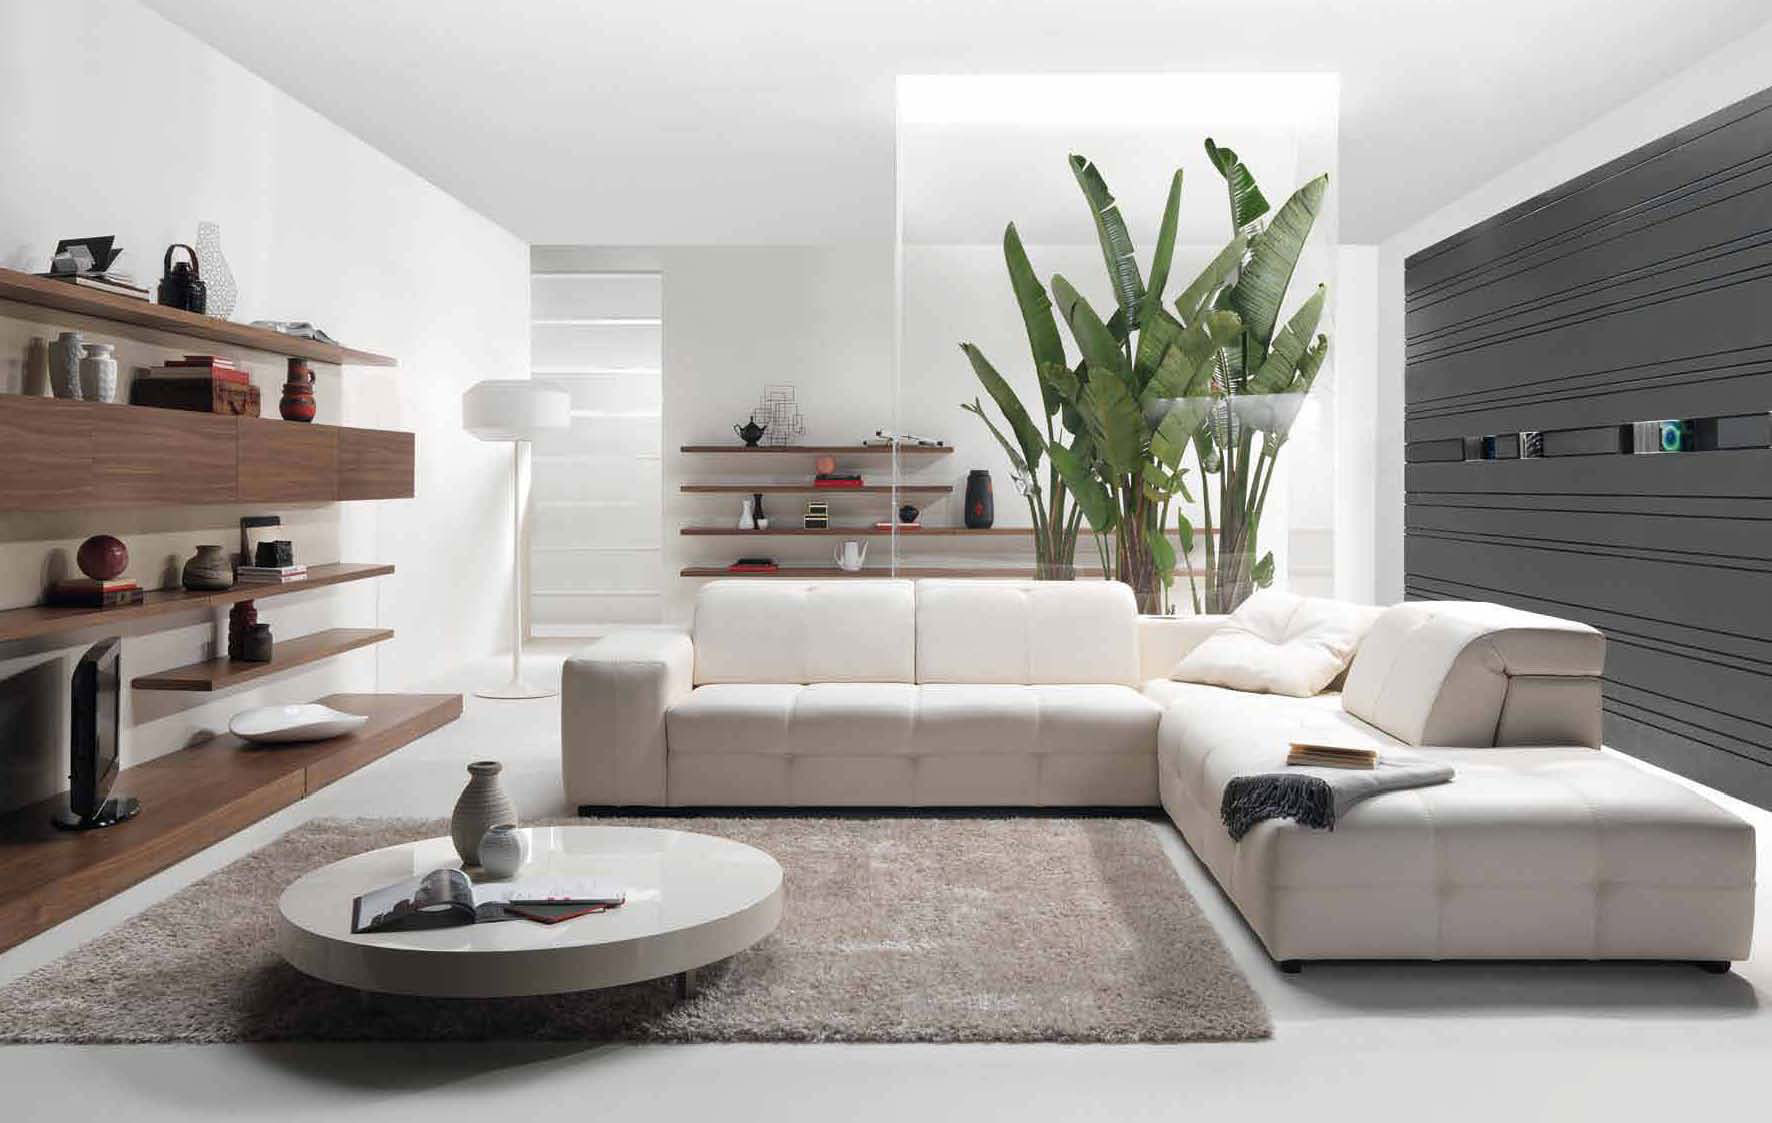 Best Art For Living Room: 25 Best Modern Living Room Designs